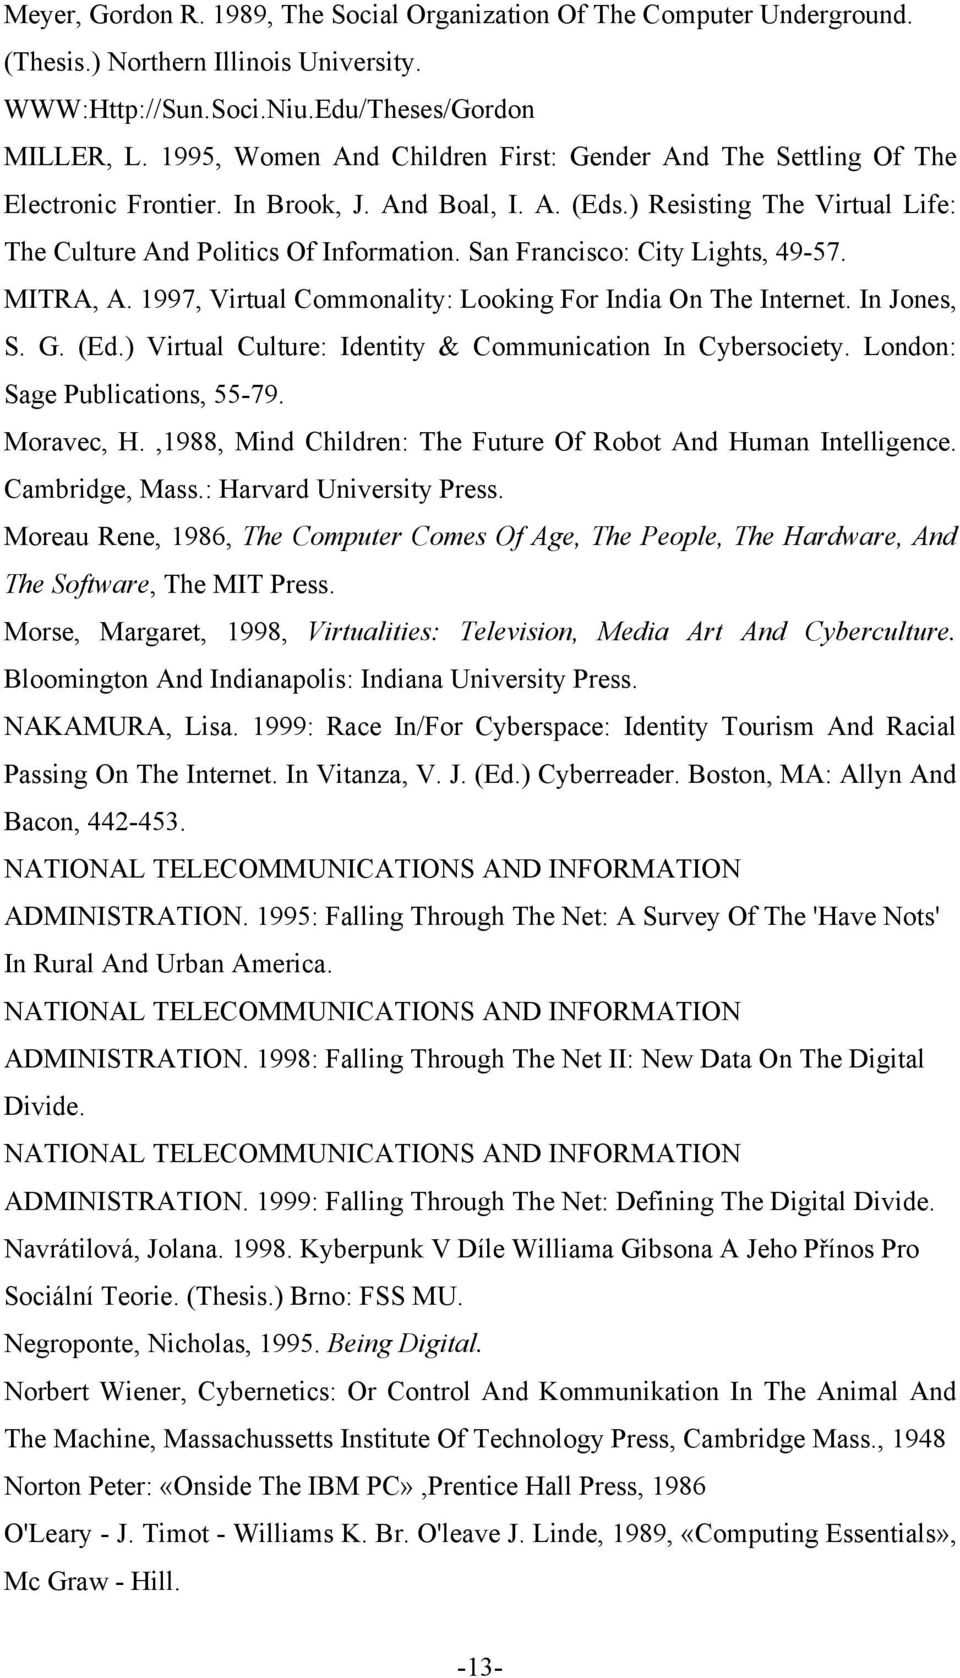 San Francisco: City Lights, 49-57. MITRA, A. 1997, Virtual Commonality: Looking For India On The Internet. In Jones, S. G. (Ed.) Virtual Culture: Identity & Communication In Cybersociety.